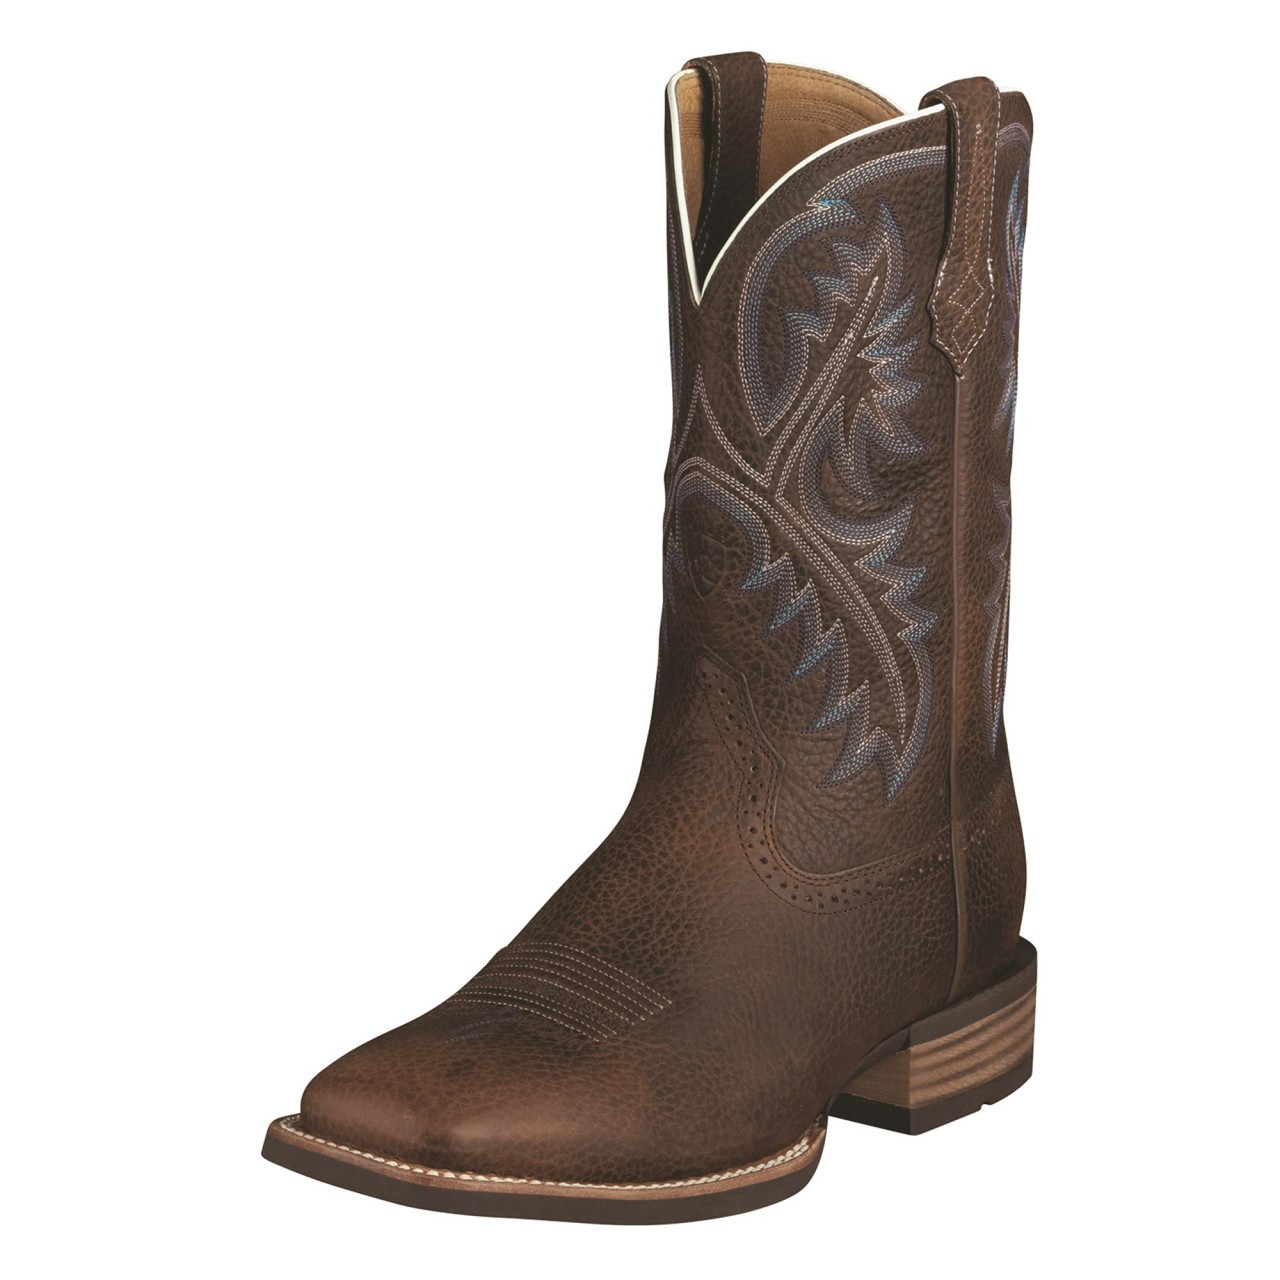 5f334659981 Men's Ariat Boots QUICKDRAW BROWN OILED ROWDY #10006714 - WJ Colt Boots